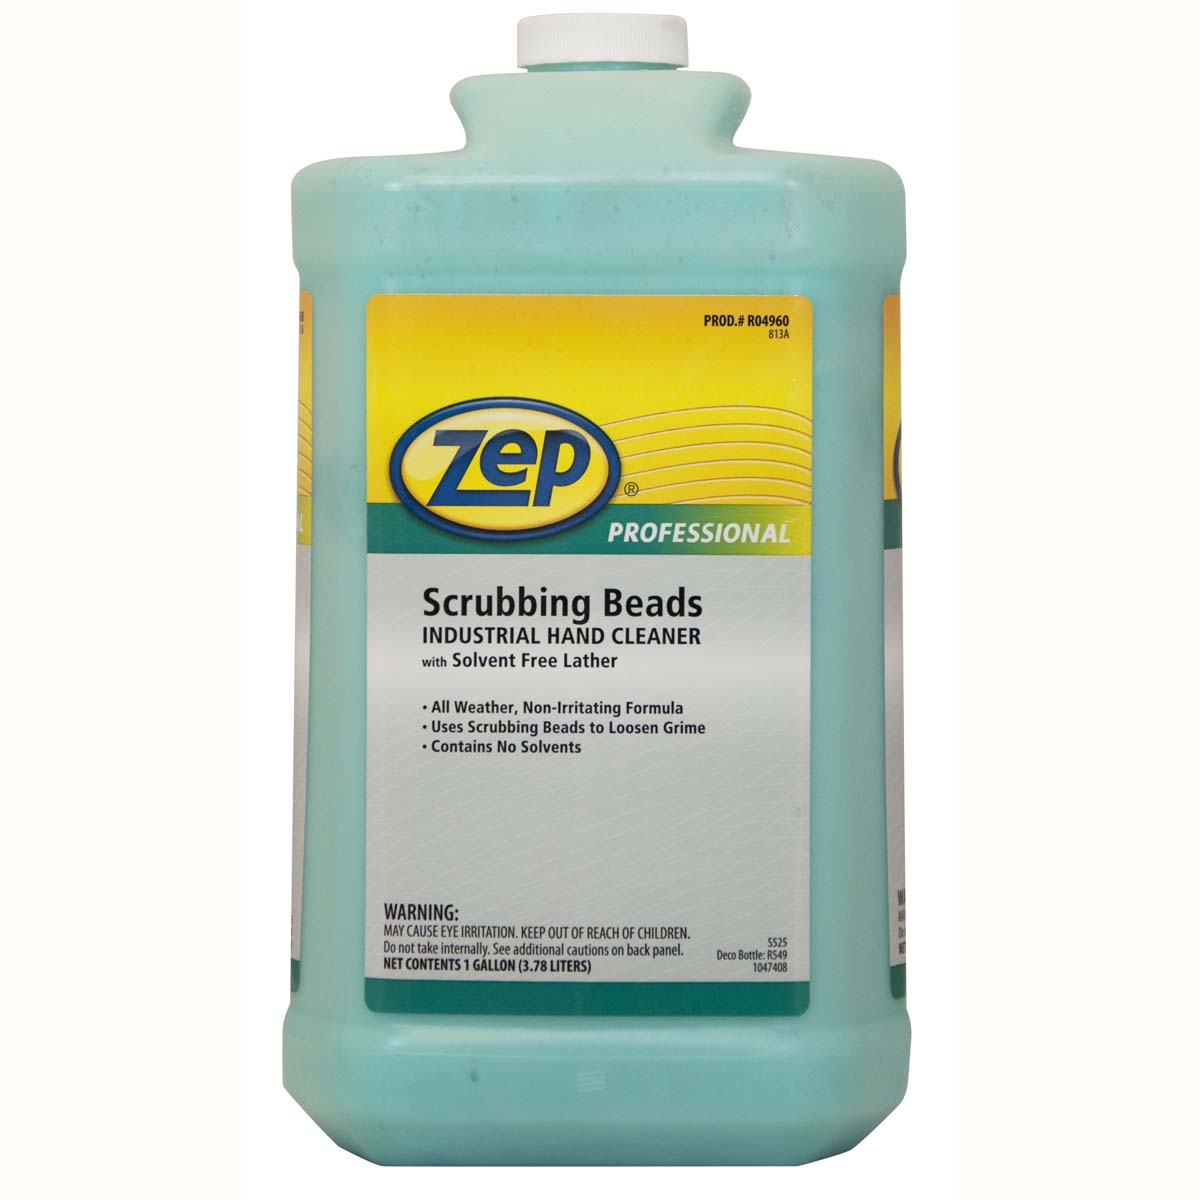 ZEP Industrial Hand Cleaner with Solvent Free Lather